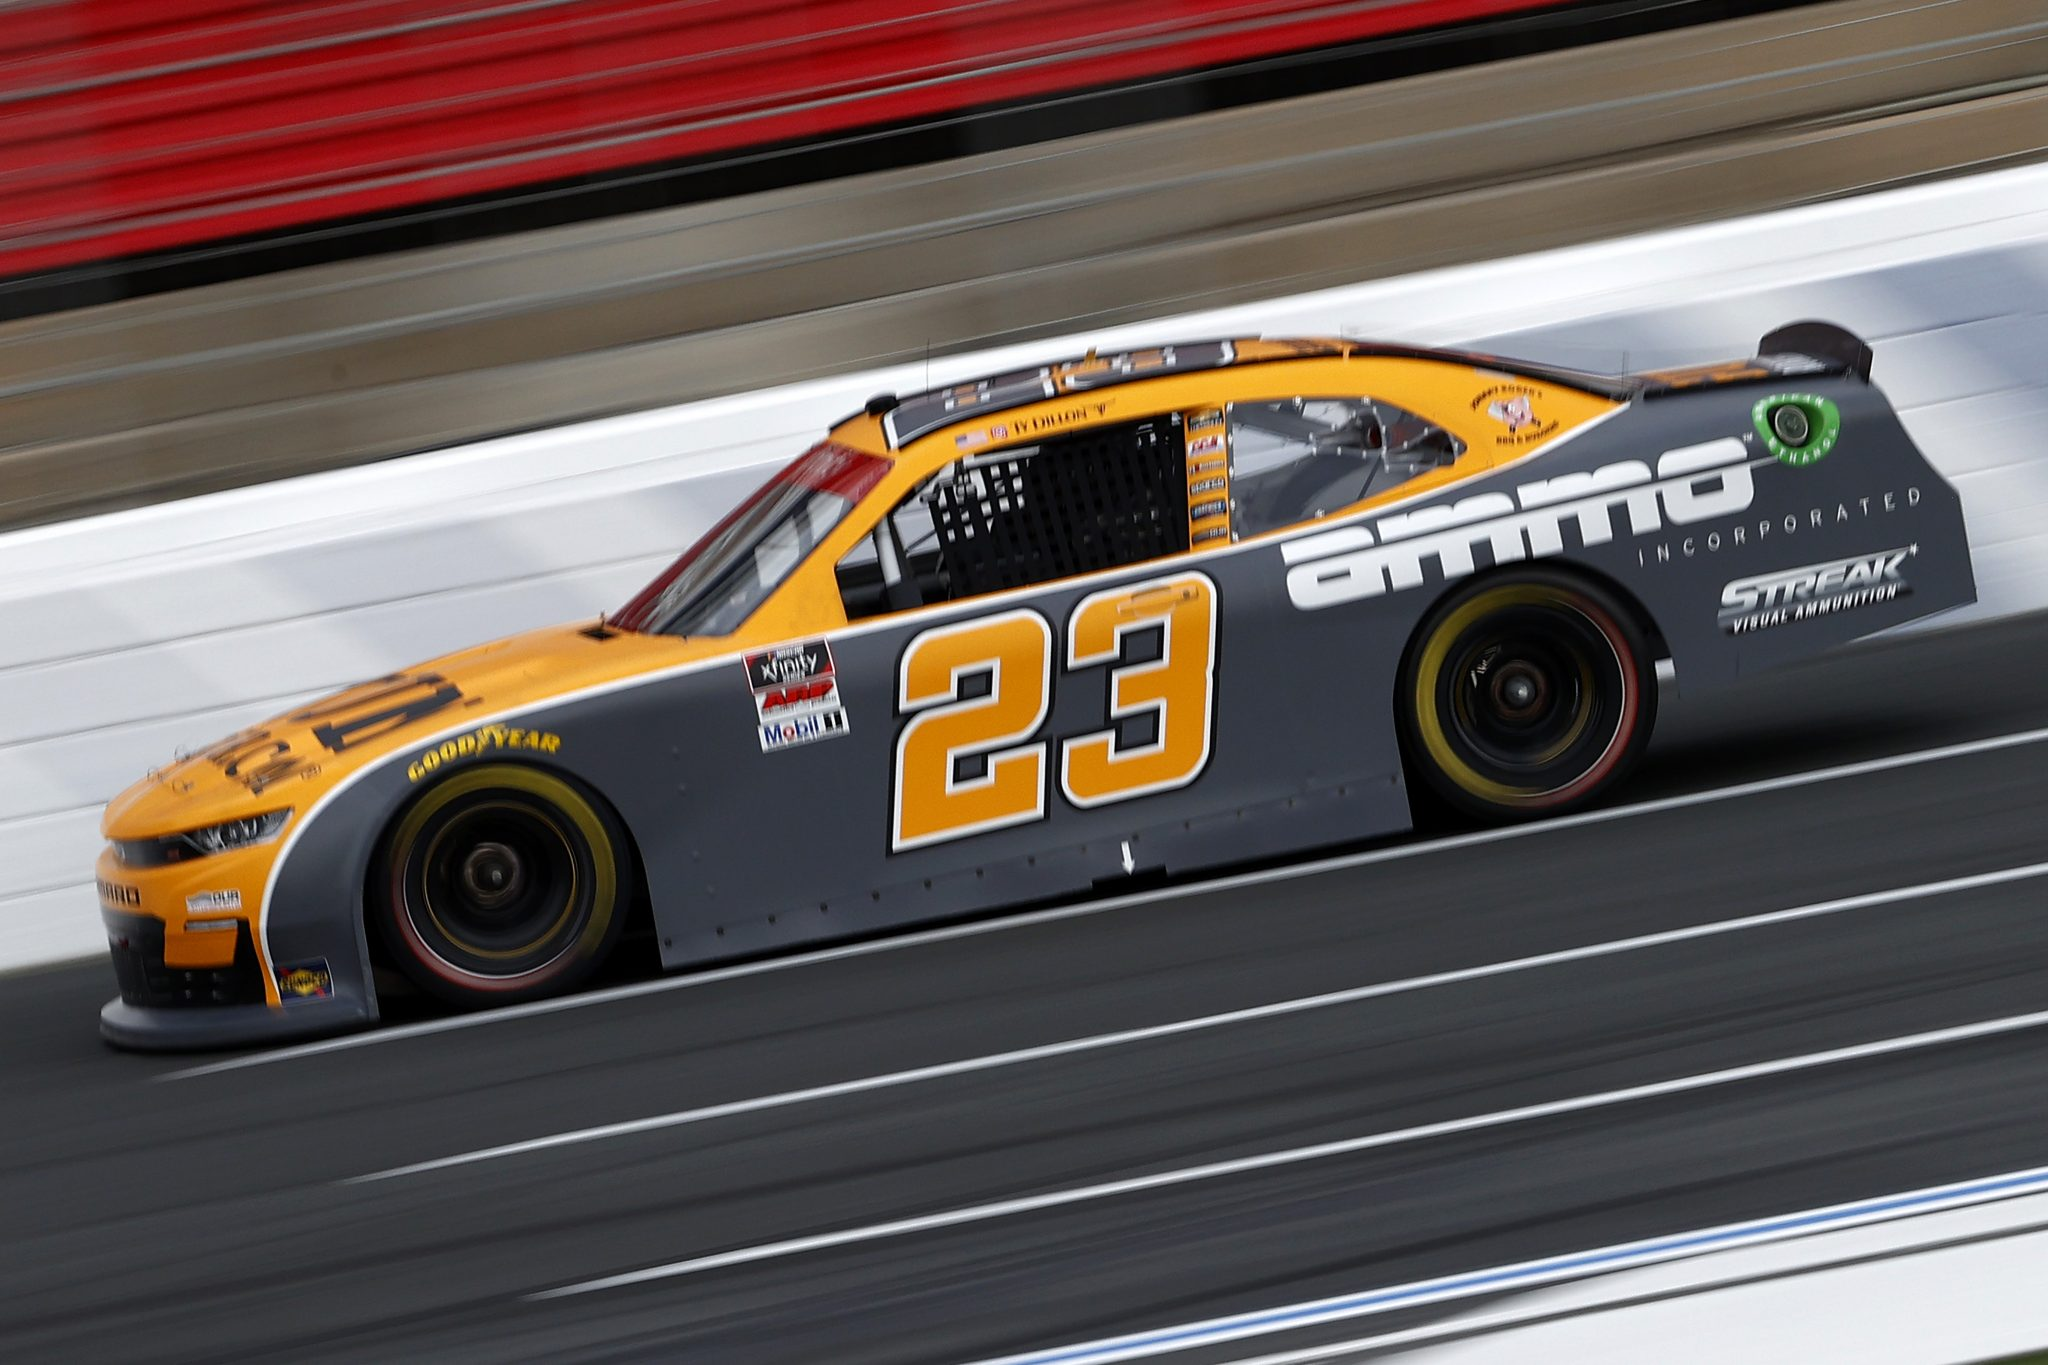 CONCORD, NORTH CAROLINA - MAY 28: Ty Dillon, driver of the #23 Chevrolet, drives during practice for the NASCAR Xfinity Series Alsco Uniforms 300 at Charlotte Motor Speedway on May 28, 2021 in Concord, North Carolina. (Photo by Maddie Meyer/Getty Images) | Getty Images